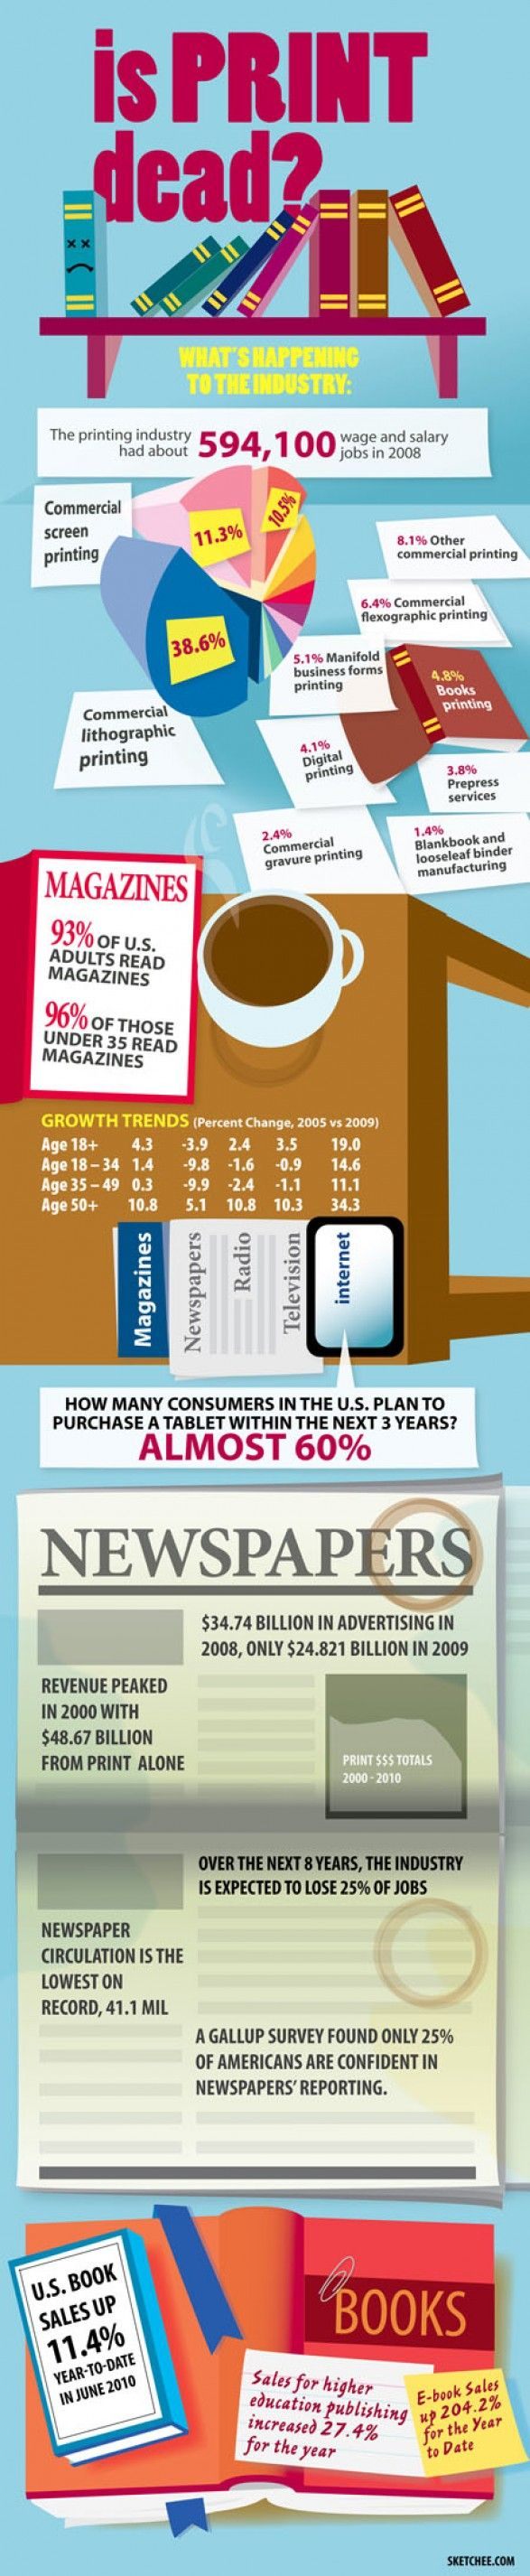 Is Print dead? (#infographic)Thoughts Prints, Design Infographic, Book Worth, Food For Thoughts, Prints Media, Design Admire, Design Prints, Prints Dead, Creative Media